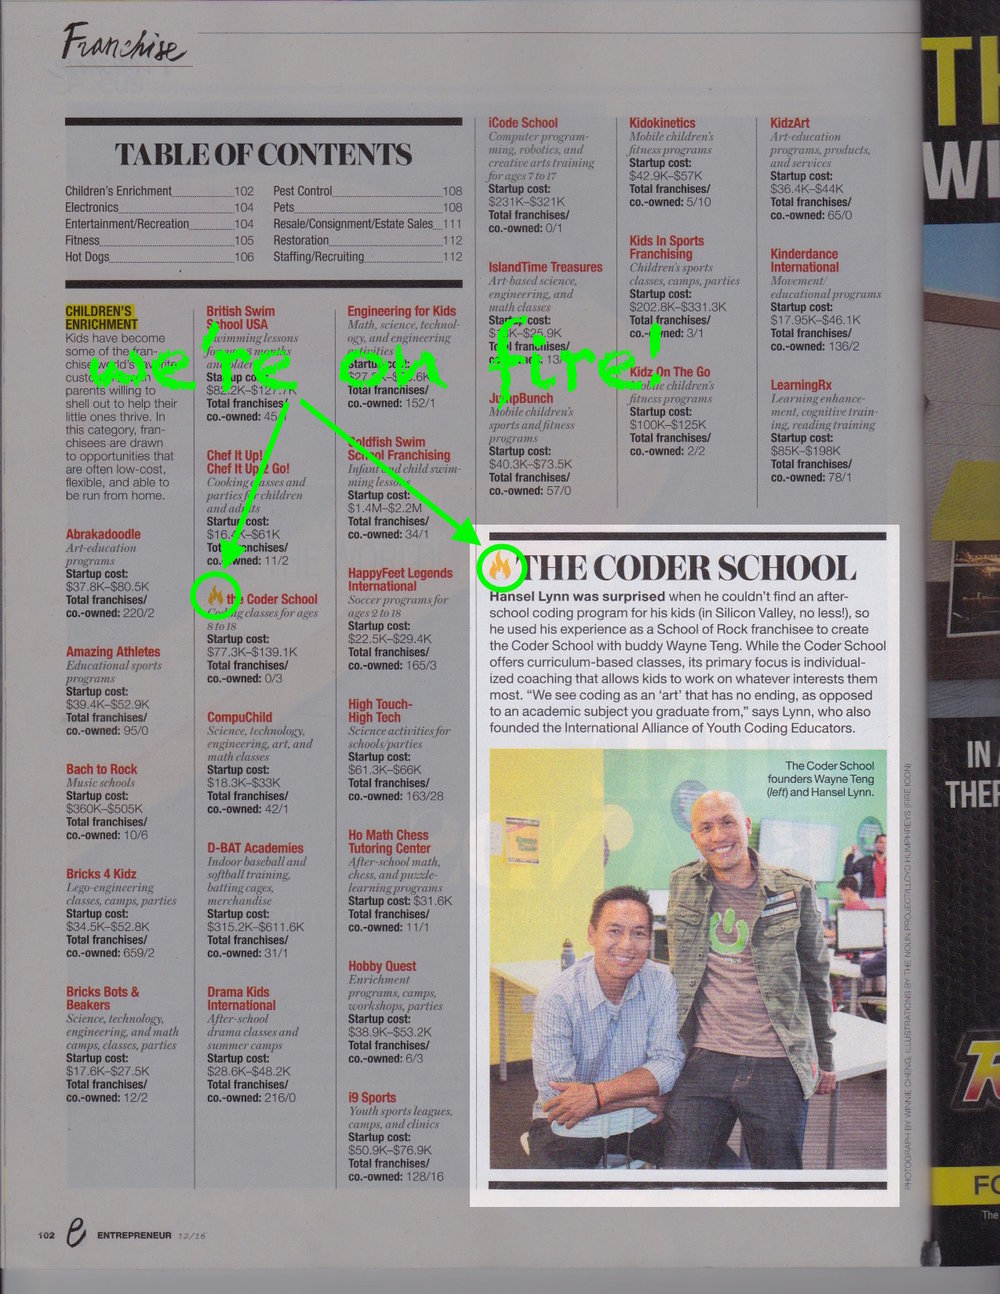 theCoderSchool in Entrepreneur Magazine!